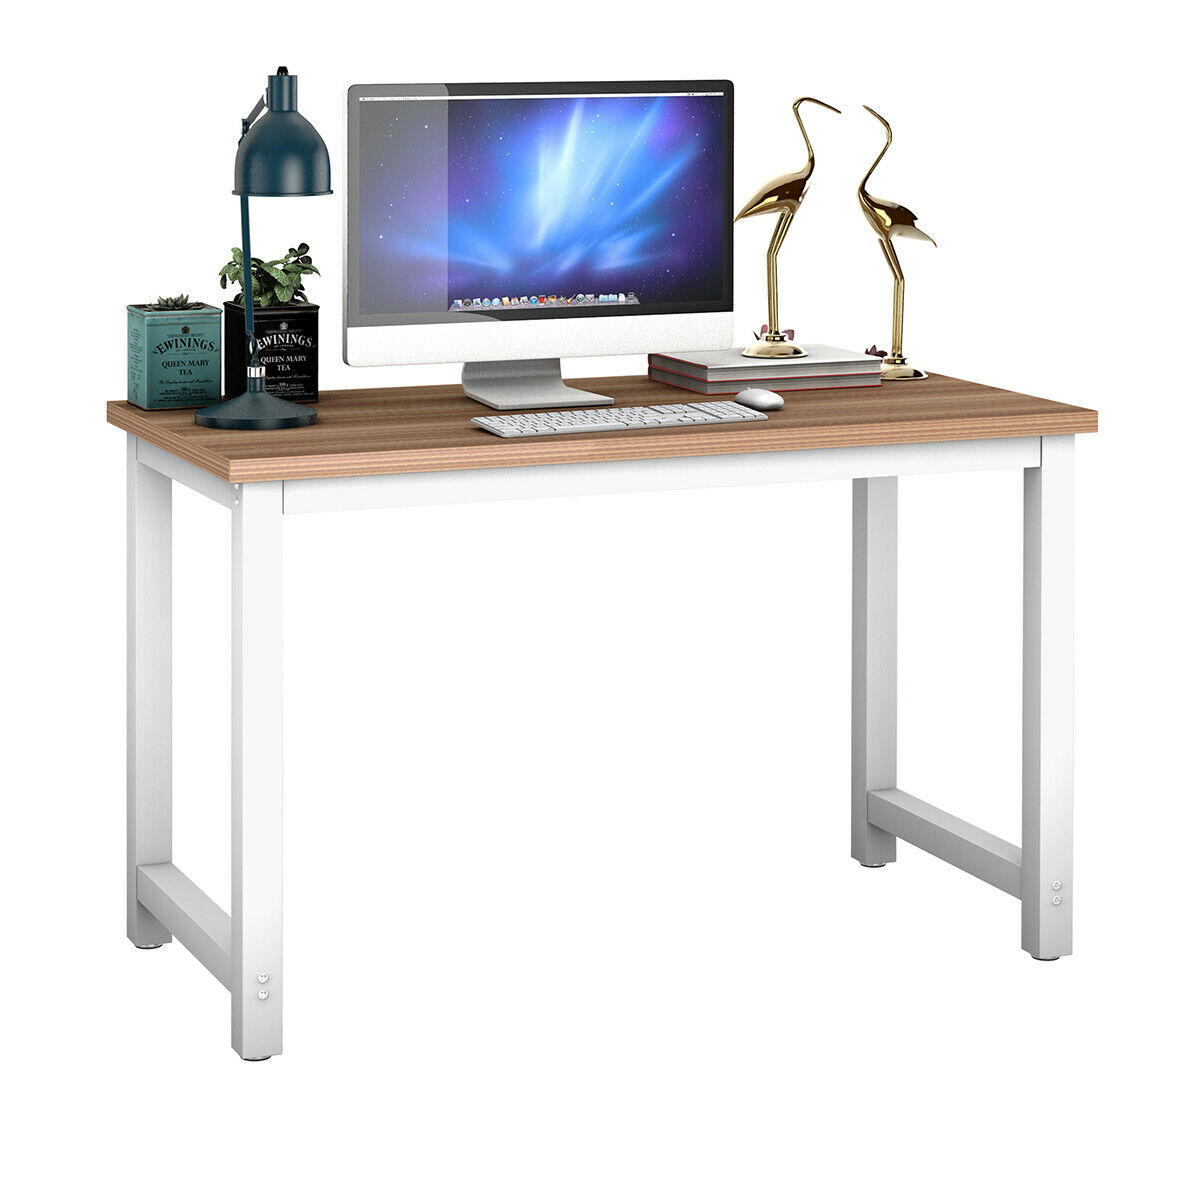 Giantex Wood Computer Desk PC Laptop Table Study Workstation Home Office Furniture New HW53853